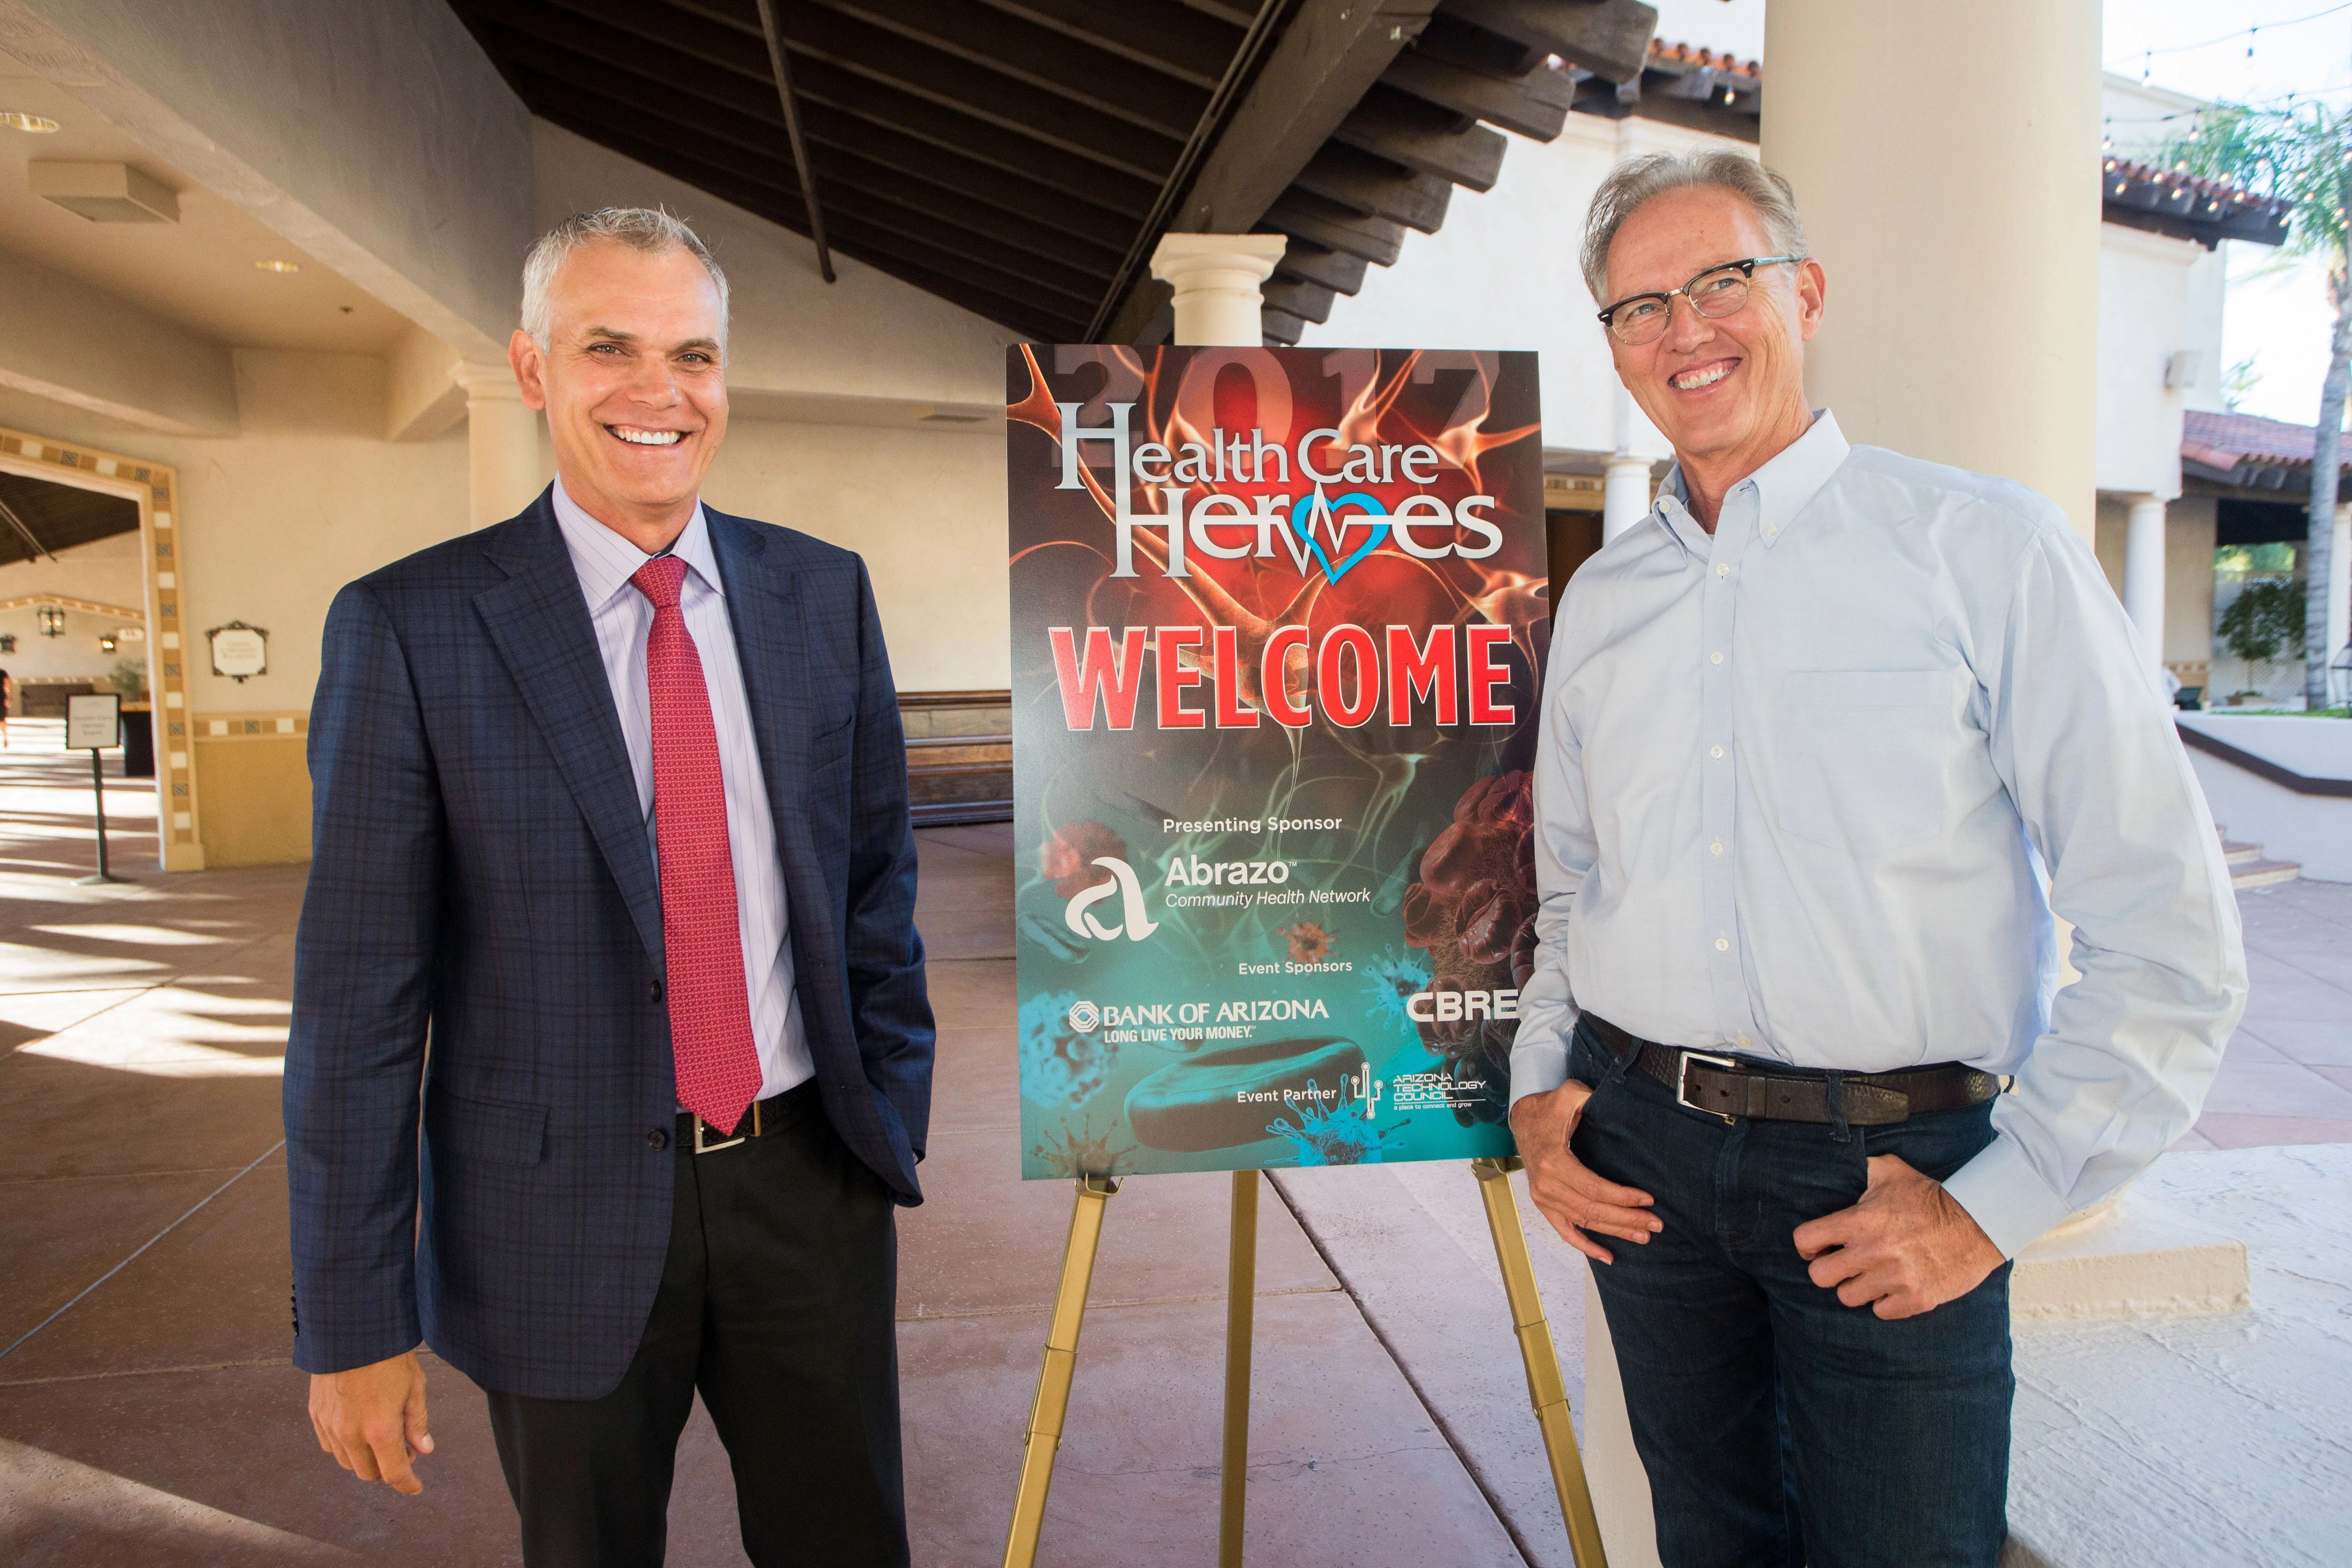 Phoenix Business Journal Chooses Dr. David Berg as Innovator of the Year at Healthcare Heroes Awards